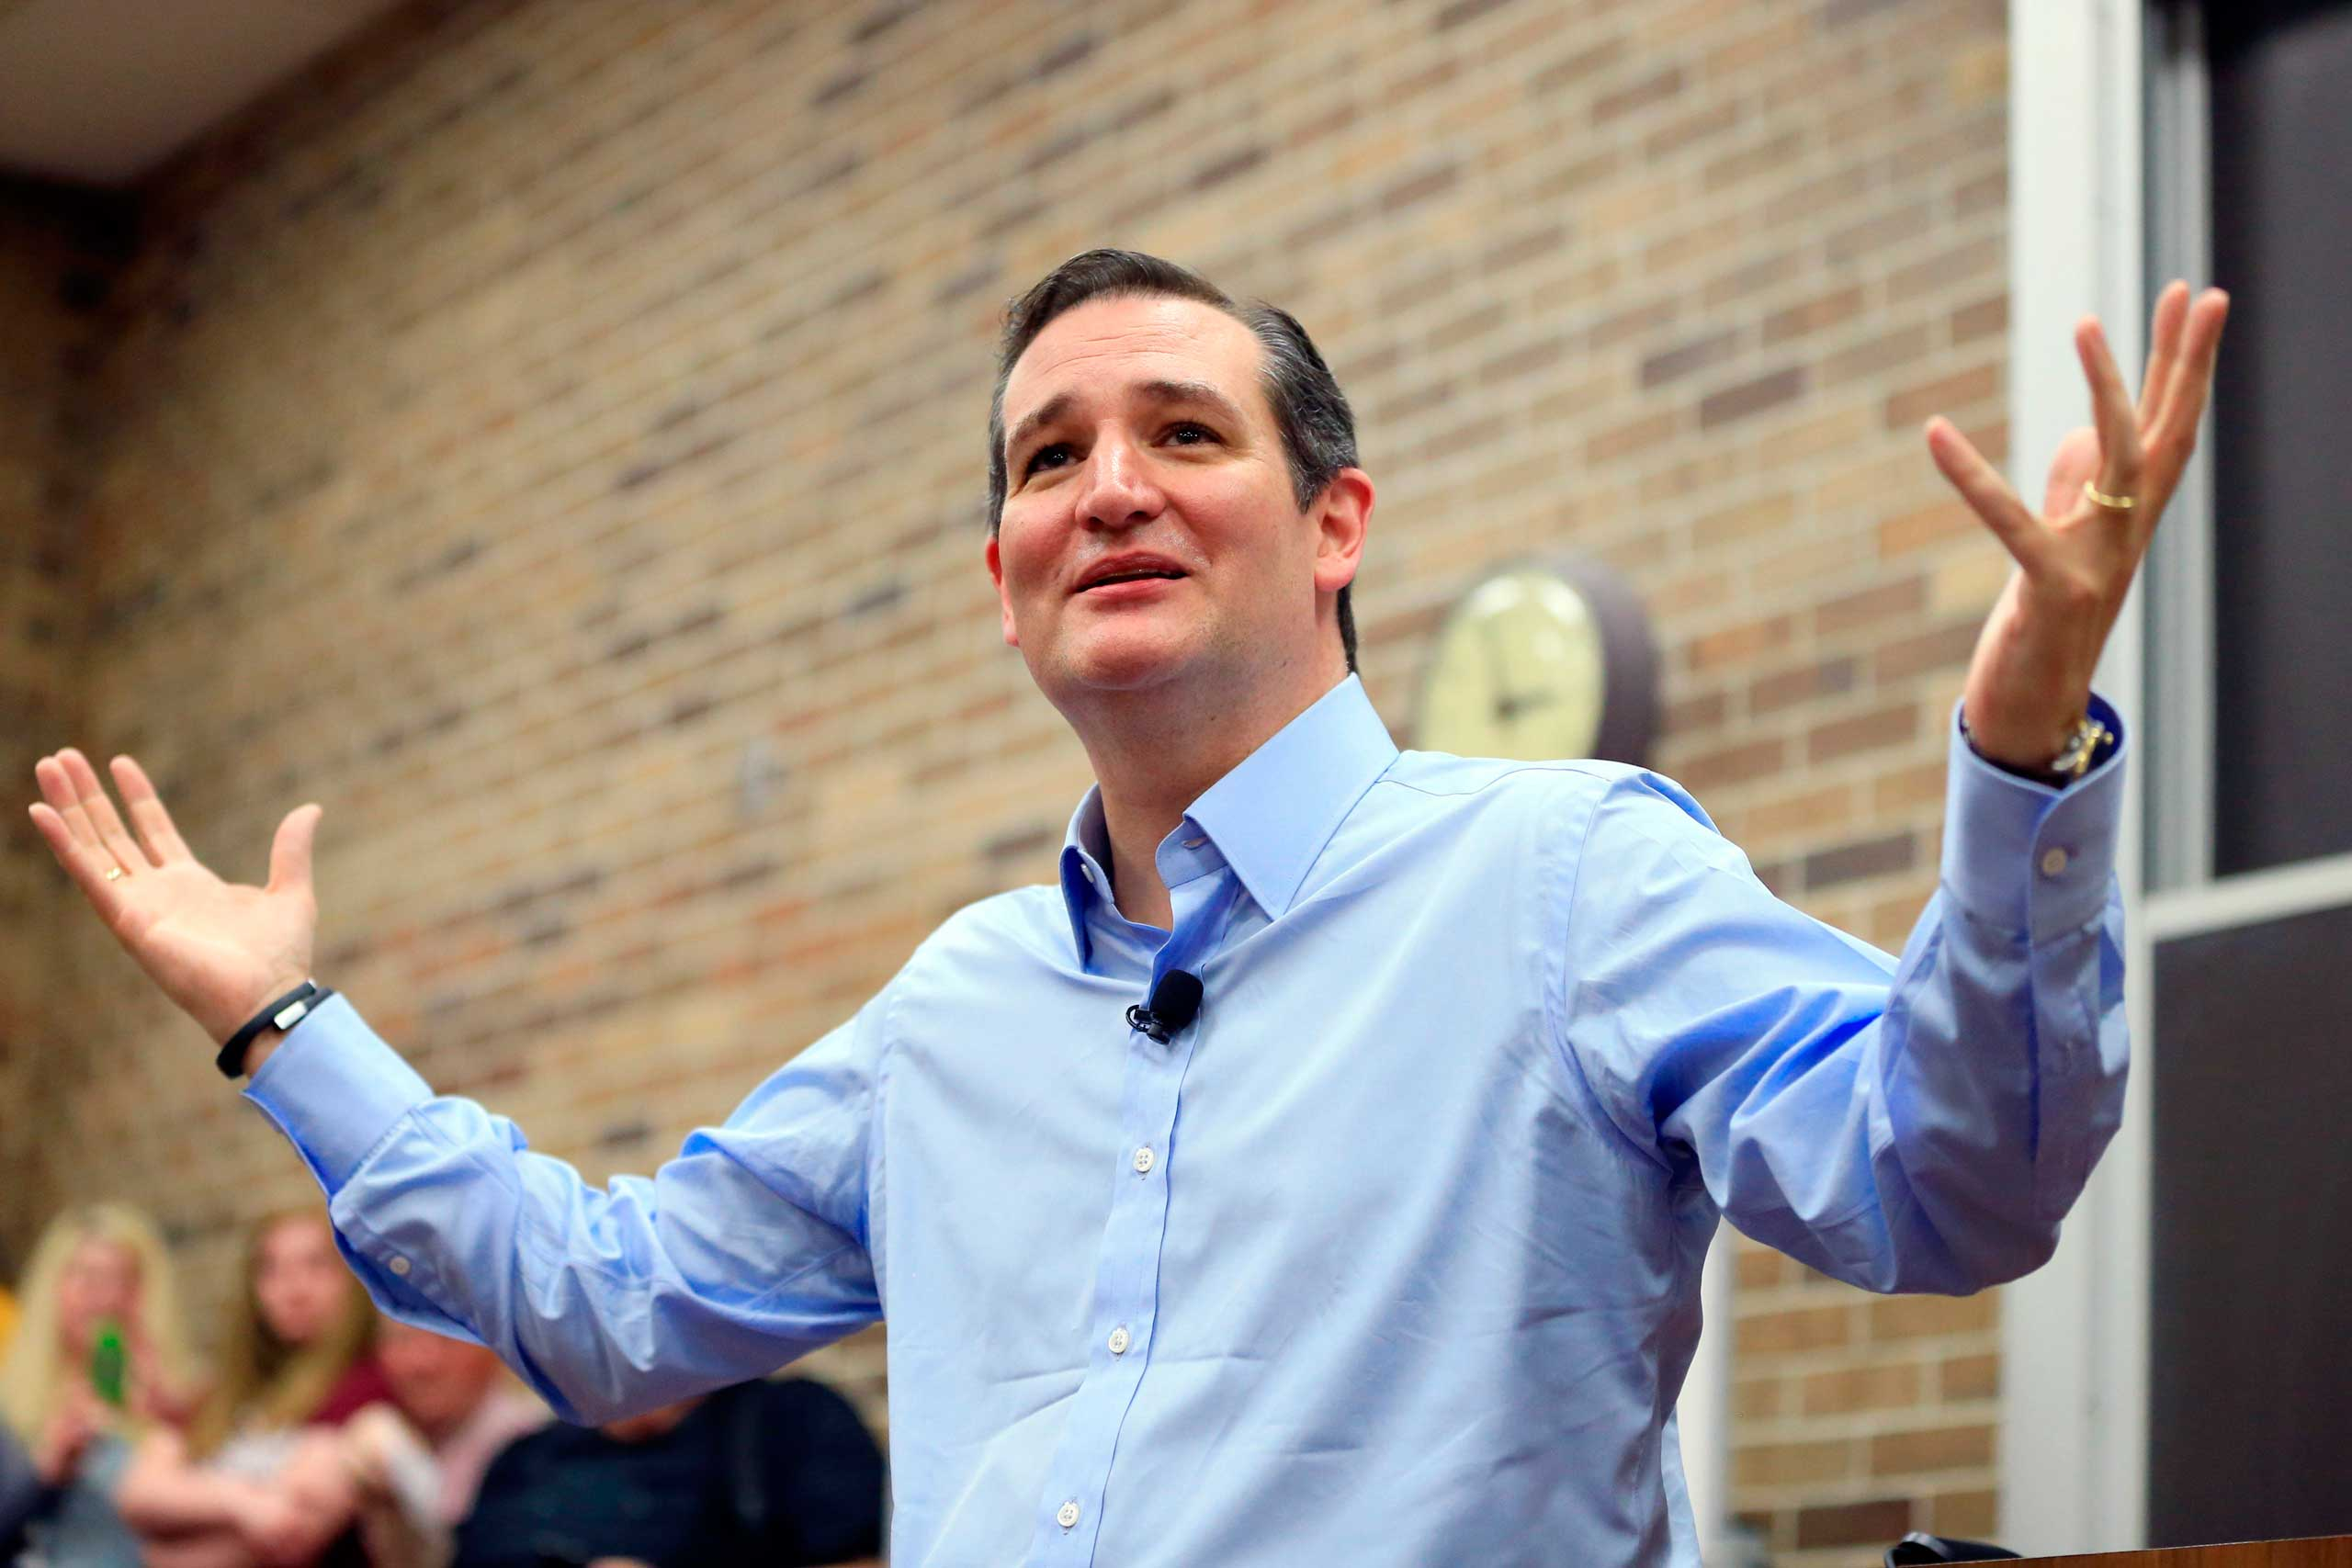 Republican presidential candidate Sen. Ted Cruz, R-Texas, speaks during a town hall event at Morningside College in Sioux City, Iowa on April 1, 2015.